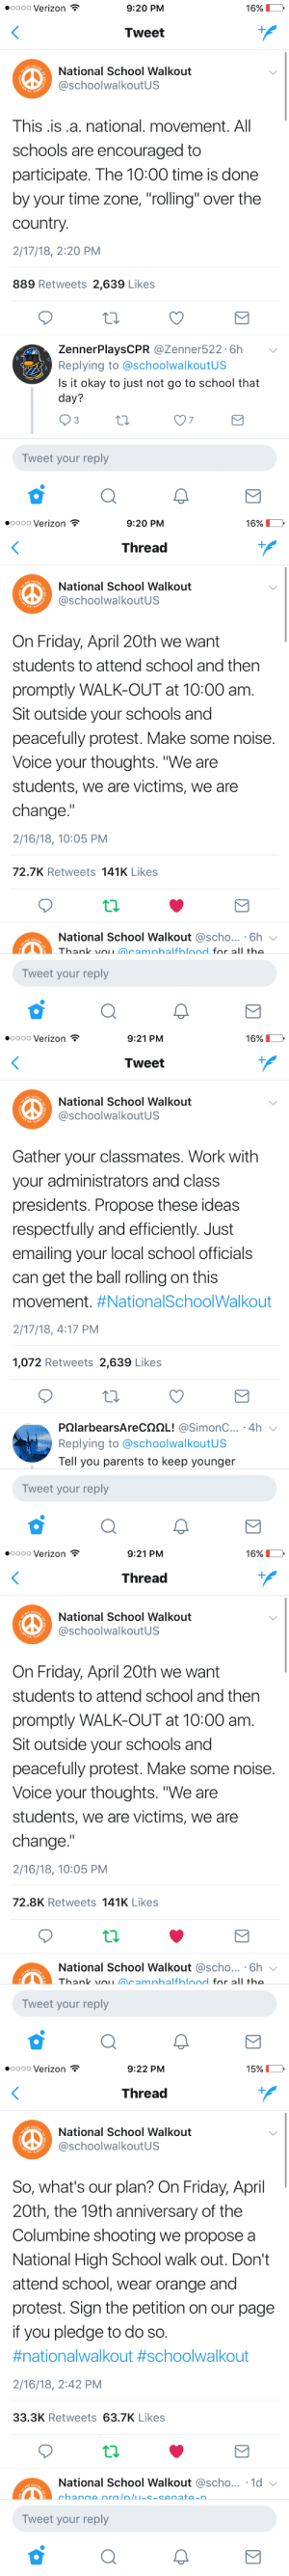 """Friday, Parents, and Protest: oooo Verizon  9:20 PM  16% 1  Tweet  National School Walkout  schoolwalkoutUS  This is.a. national. movement. All  schools are encouraged to  participate. The 10:00 time is done  by your time zone, """"rolling"""" over the  country  2/17/18, 2:20 PM  889 Retweets 2,639 Likes  ZennerPlaysCPR @Zenner522.6hv  Replying to @schoolwalkoutUS  Is it okay to just not go to school that  day?  7  Tweet your reply   oooo Verizon  9:20 PM  16%D  Thread  National School Walkout  SchoolwalkoutUS  On Friday, April 20th we want  students to attend school and then  promptly WALK-OUT at 10:00 am.  Sit outside your schools and  peacefully protest. Make some noise.  Voice your thoughts. """"We are  students, we are victims, we are  change.""""  2/16/18, 10:05 PM  72.7K Retweets 141K Likes  National School Walkout @scho... 6h  Tweet your reply   oooo Verizon  9:21 PM  16% D  Tweet  National School Walkout  SchoolwalkoutUS  Gather your classmates. Work with  your administrators and class  presidents. Propose these ideas  respectfully and efficiently. Just  emailing your local school officials  can get the ball rolling on this  movement. #NationalSchoo